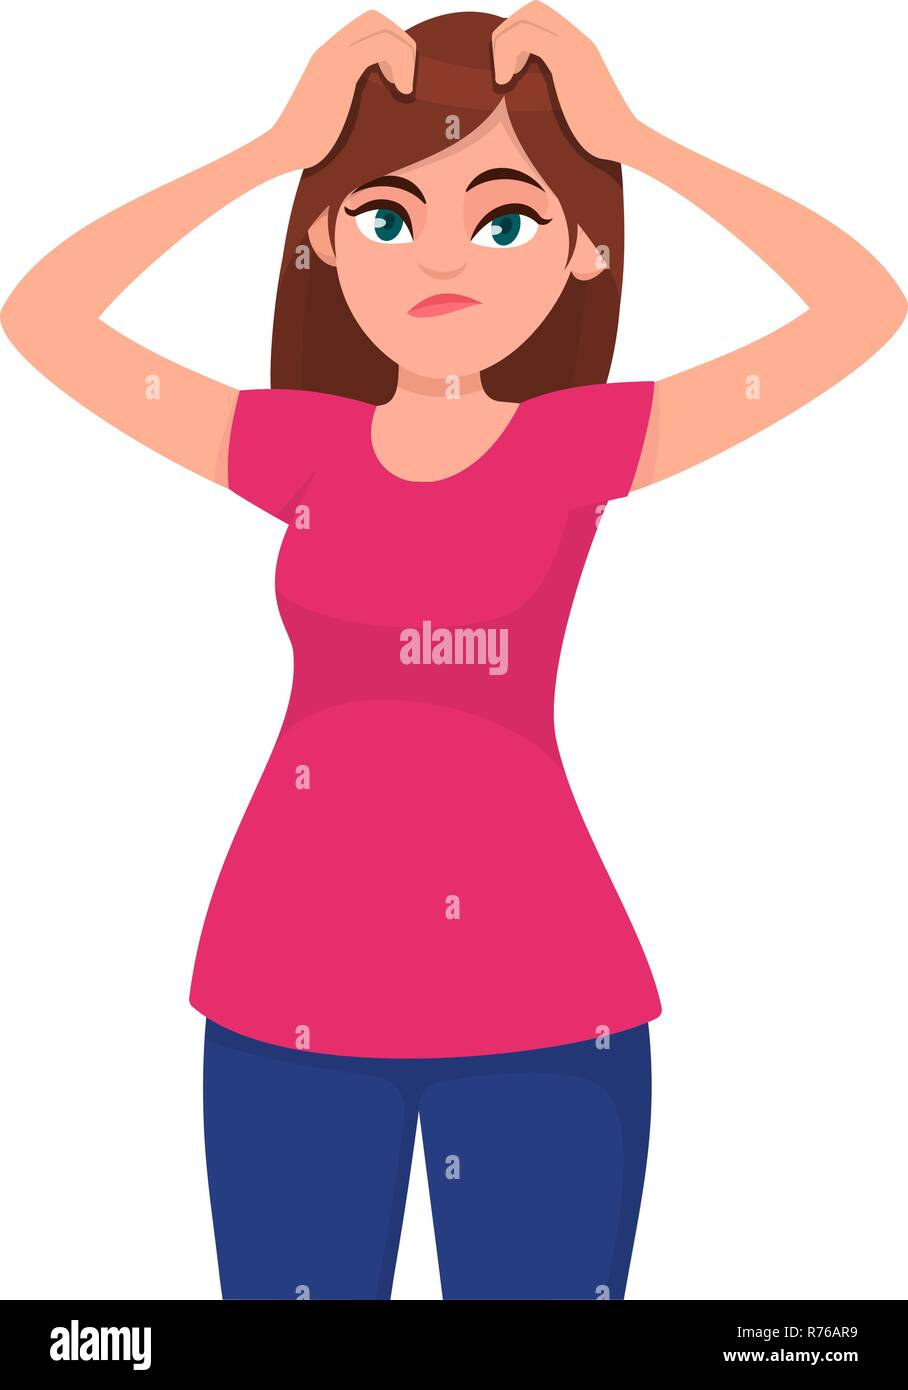 Confused and doubtful young woman scratching her head. Oops, question, doubt and decision making concept illustration in vector cartoon flat style. Hu - Stock Image